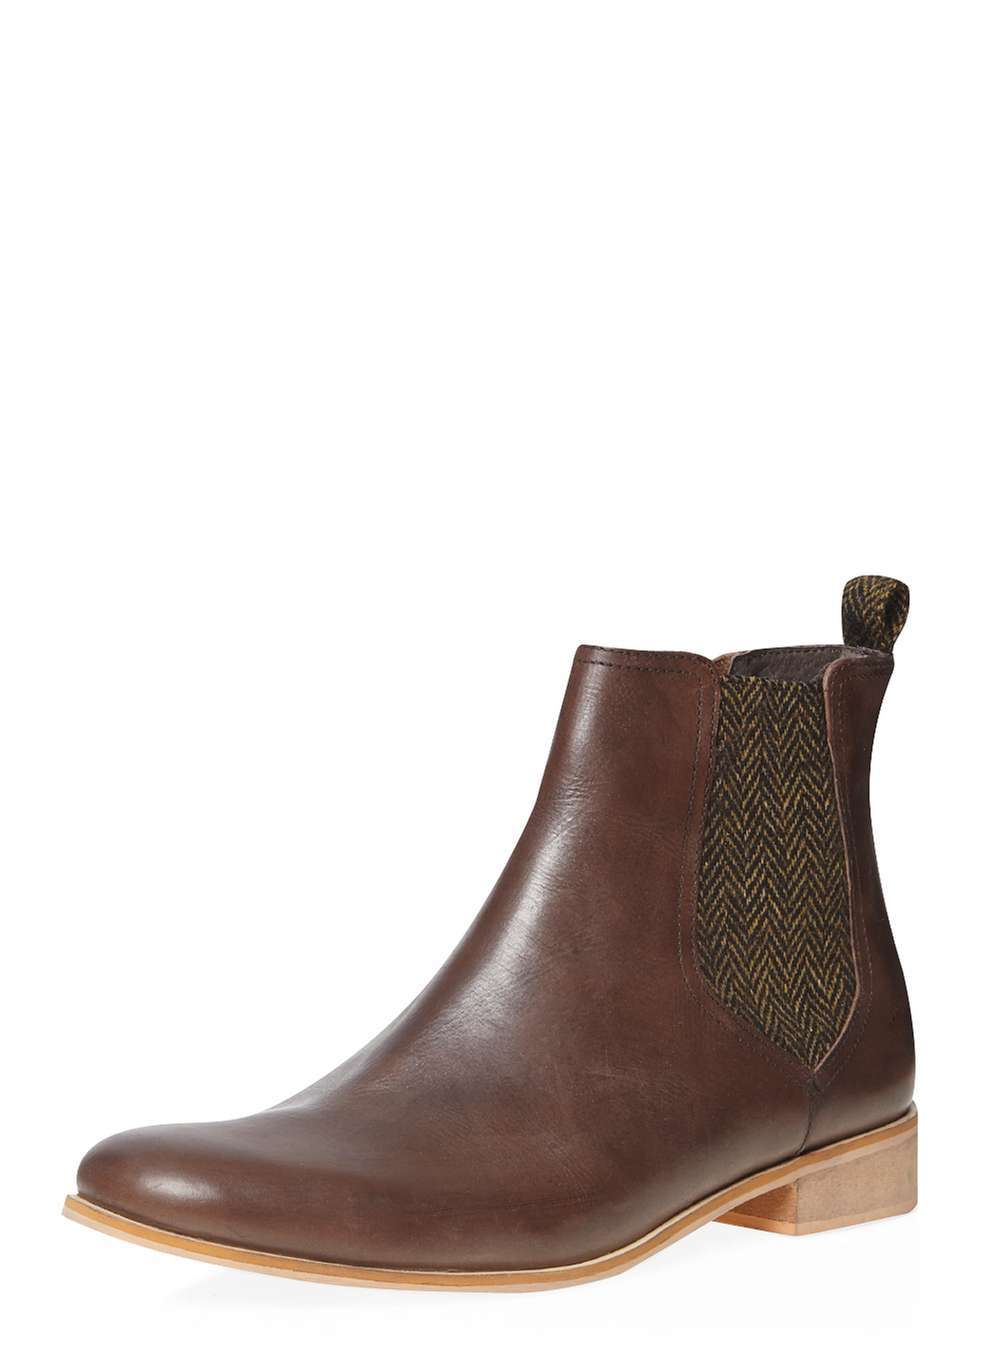 Womens **Ravel Brown Leather Boots Brown - predominant colour: chocolate brown; occasions: casual, work, creative work; material: leather; heel height: mid; heel: block; toe: round toe; boot length: ankle boot; style: standard; finish: plain; pattern: plain; wardrobe: basic; season: a/w 2016